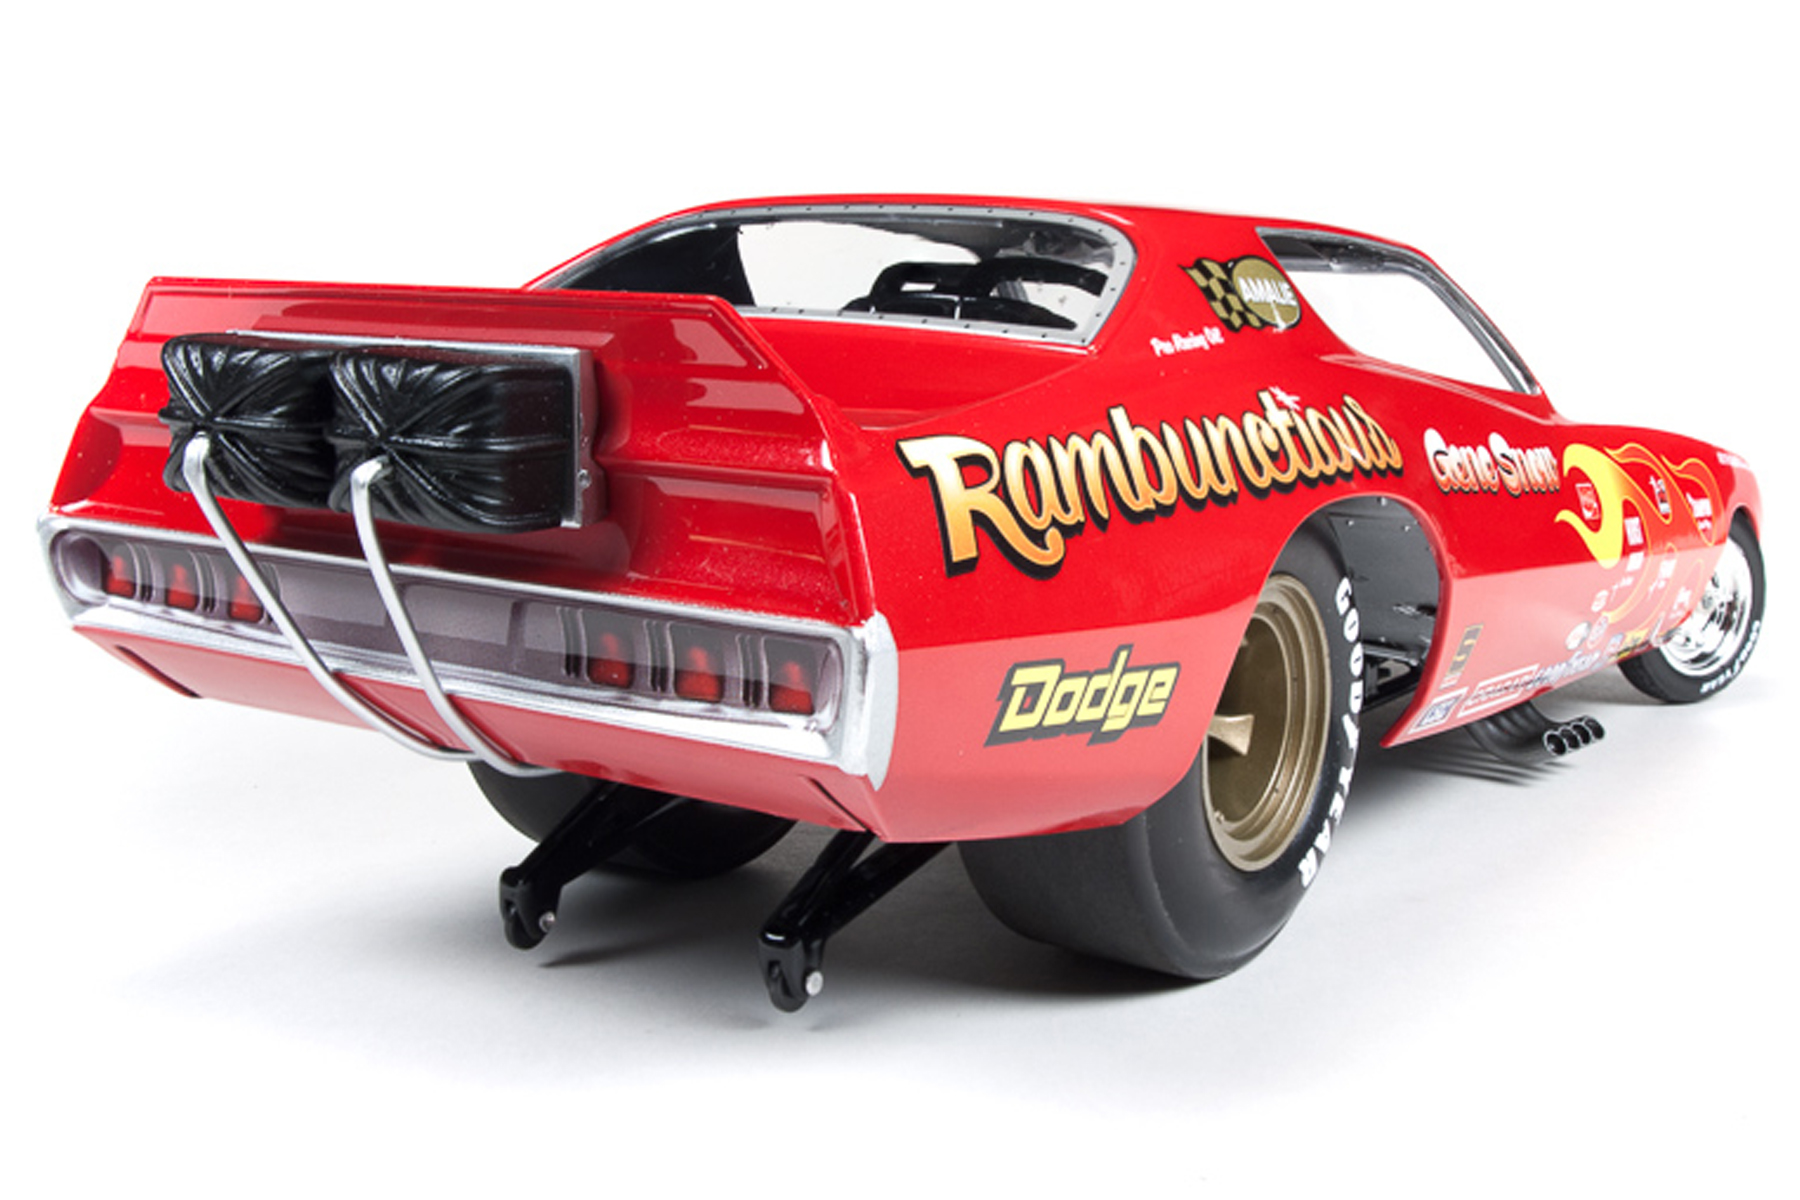 Rambunctious 1971 Dodge Charger Funny Car Gene Snow Round2